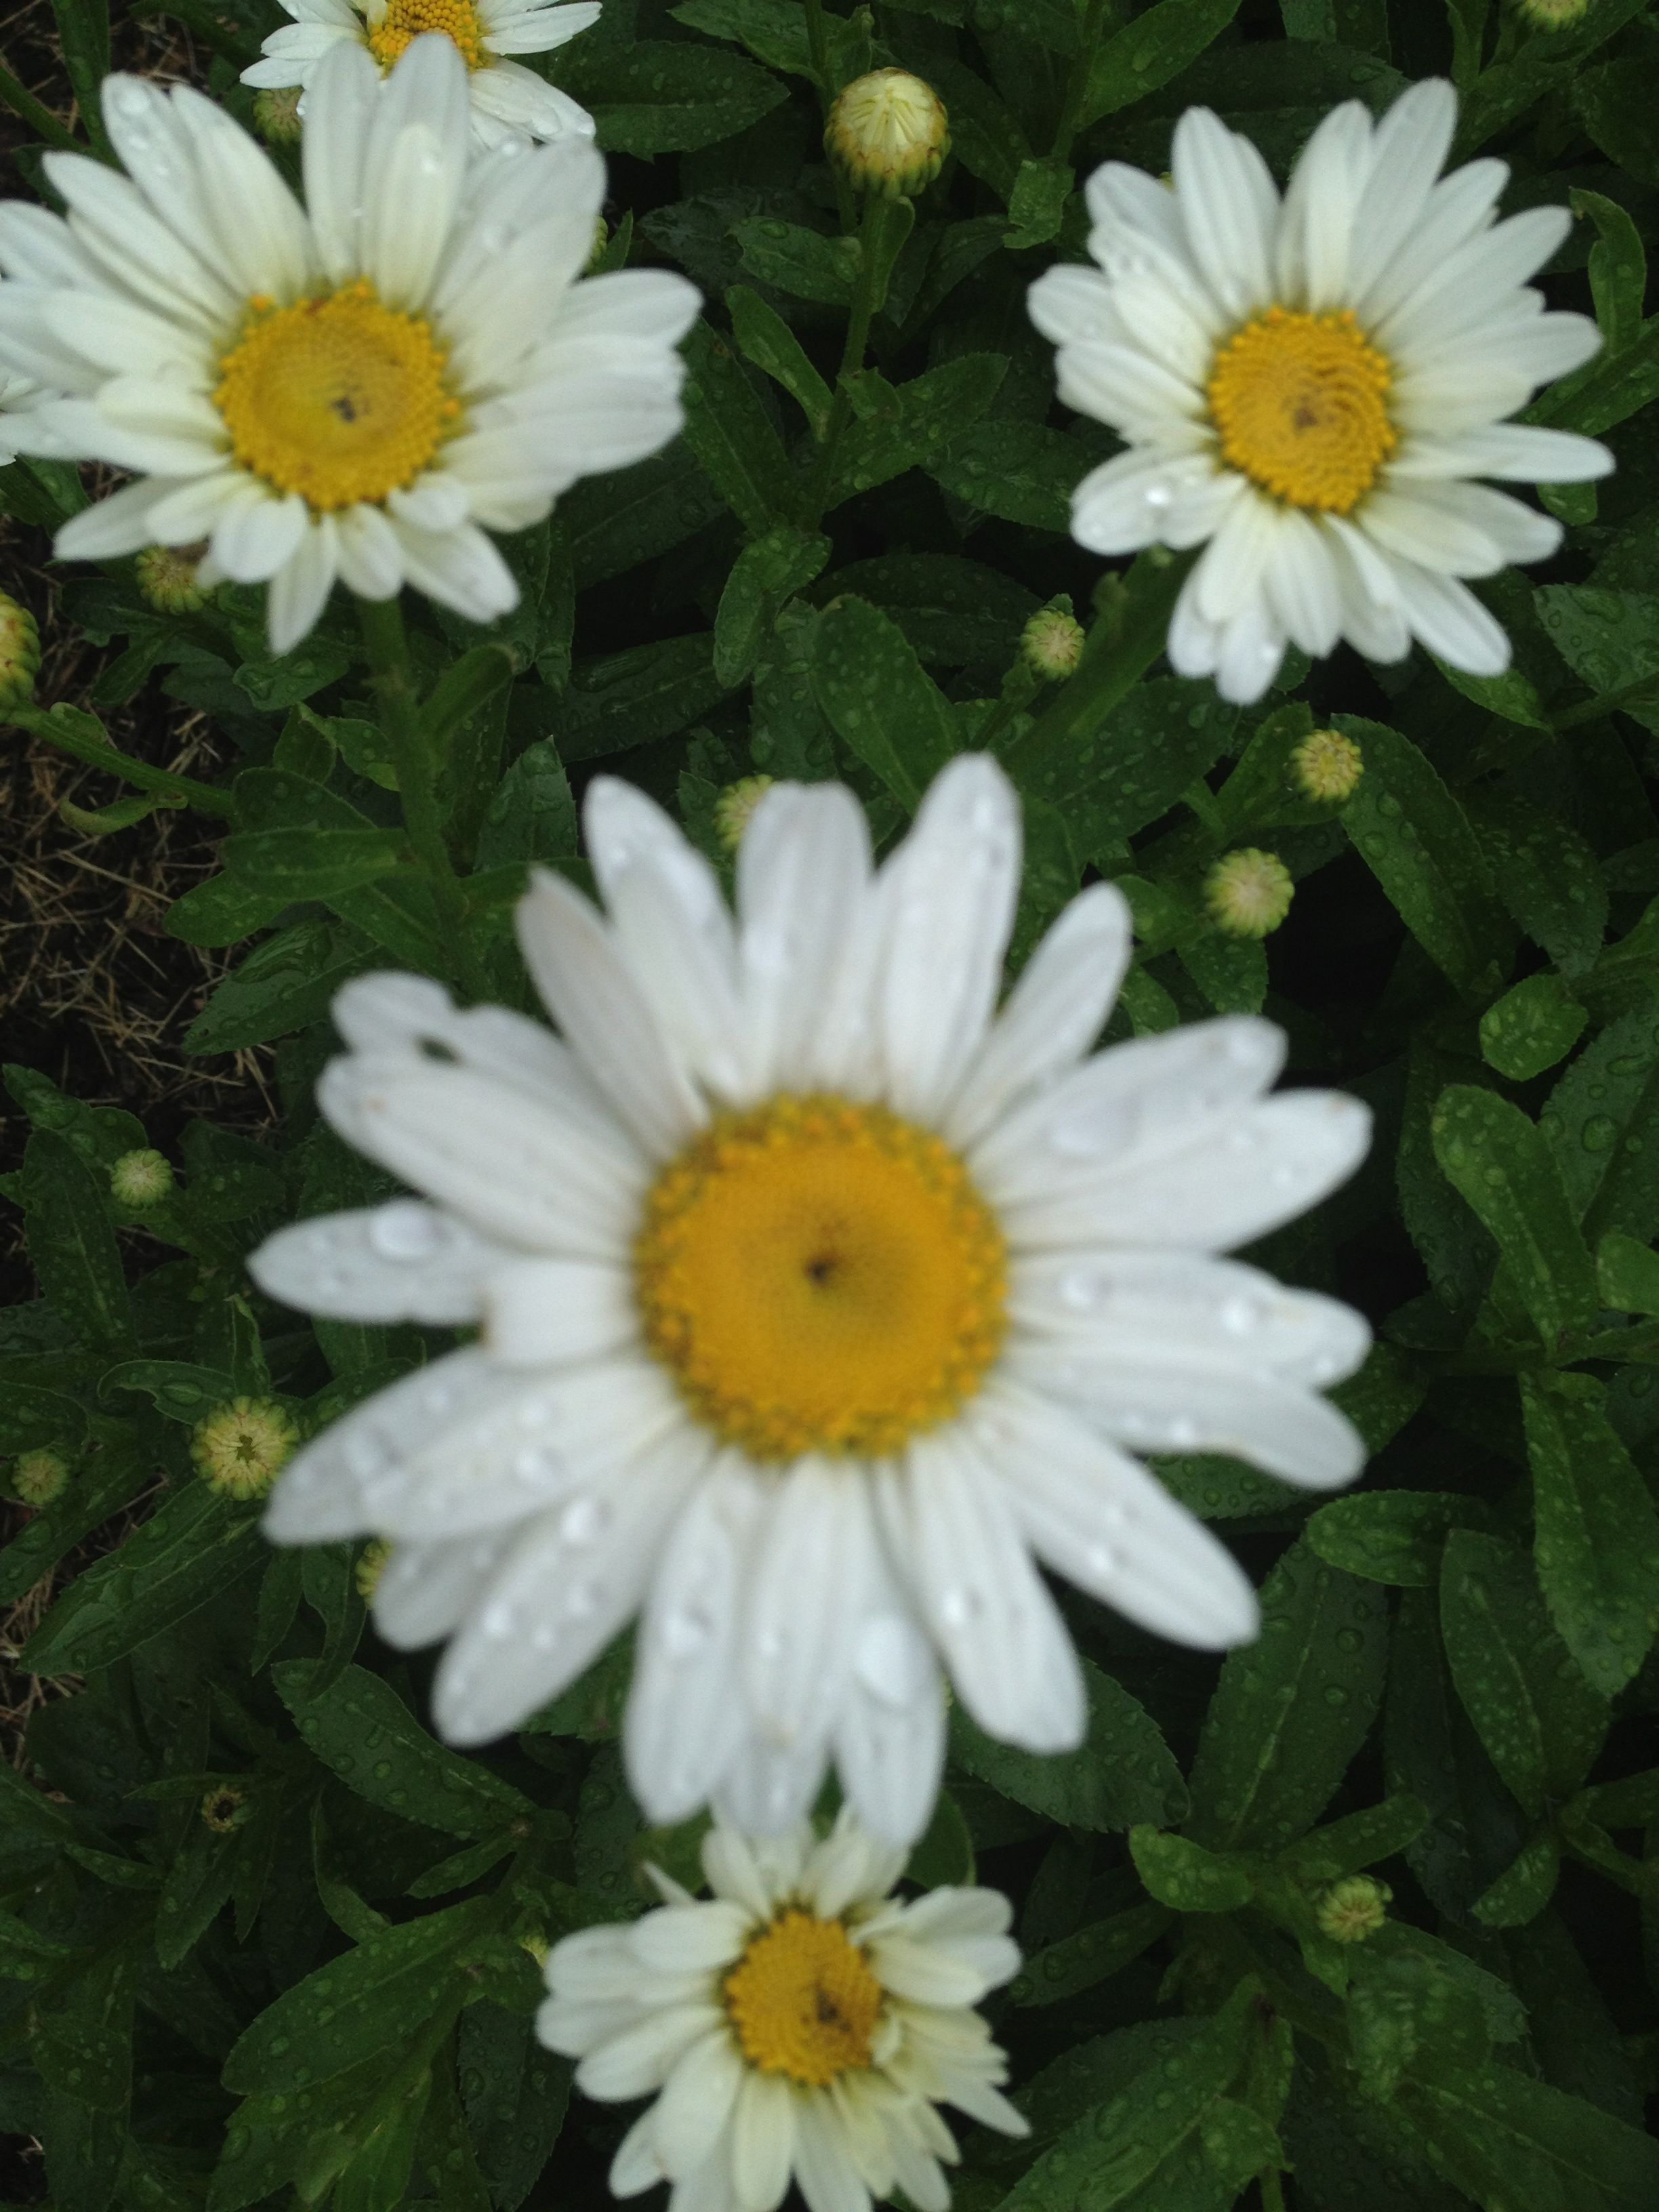 Daisies Are The Flower That When You Give To Someone You Are Sure To